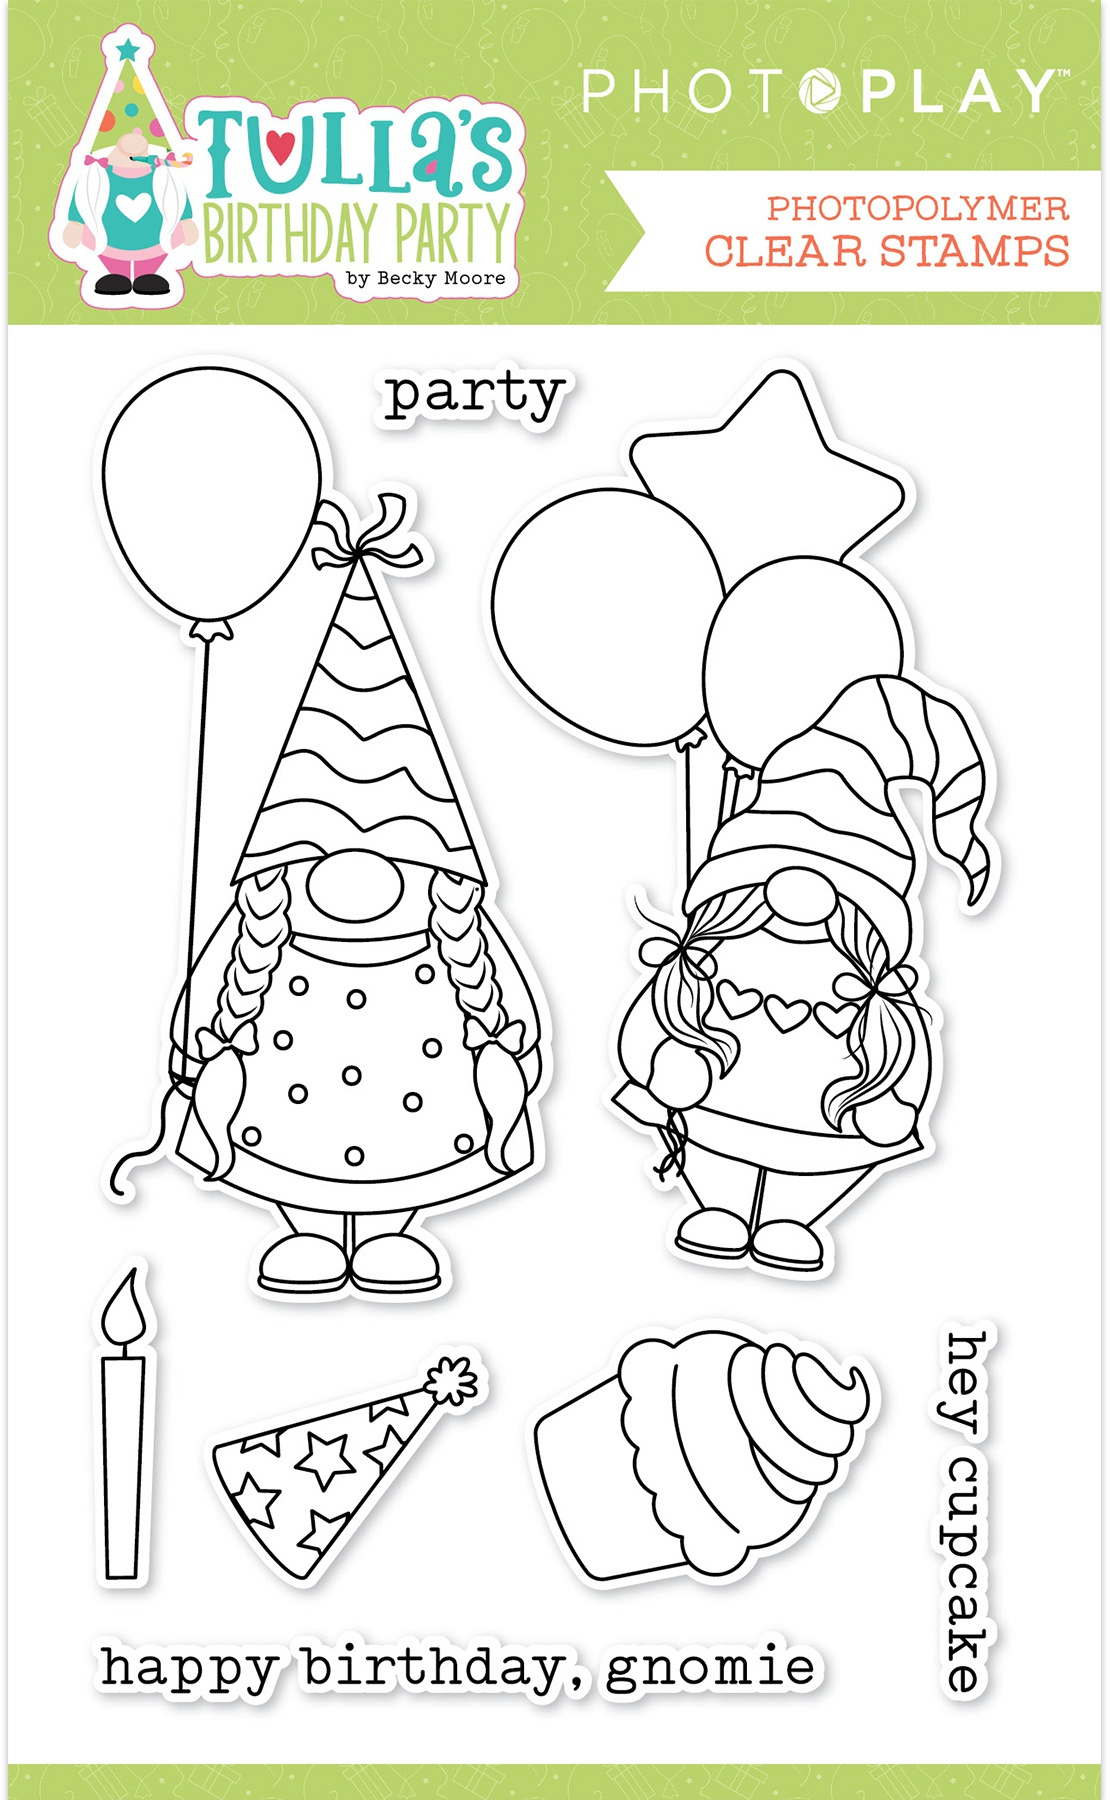 PhotoPlay Photopolymer Stamp-Tulla's Birthday